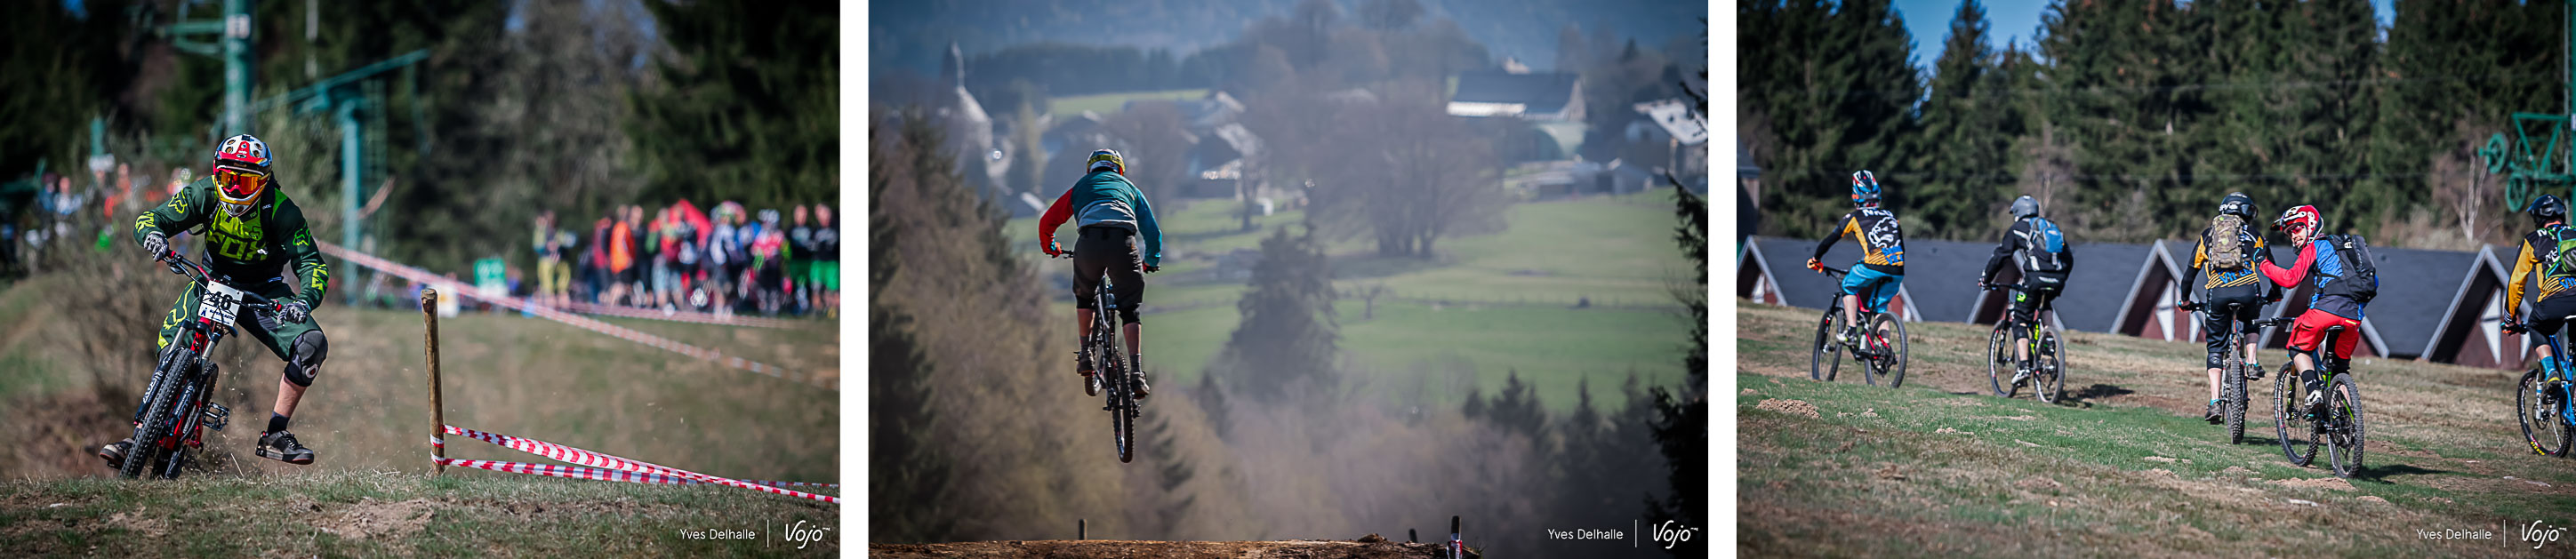 Compo7_Enduro_Easyphone_2015_Baraque_Fraiture_Copyright_YDelhalle_VojoMag_-3